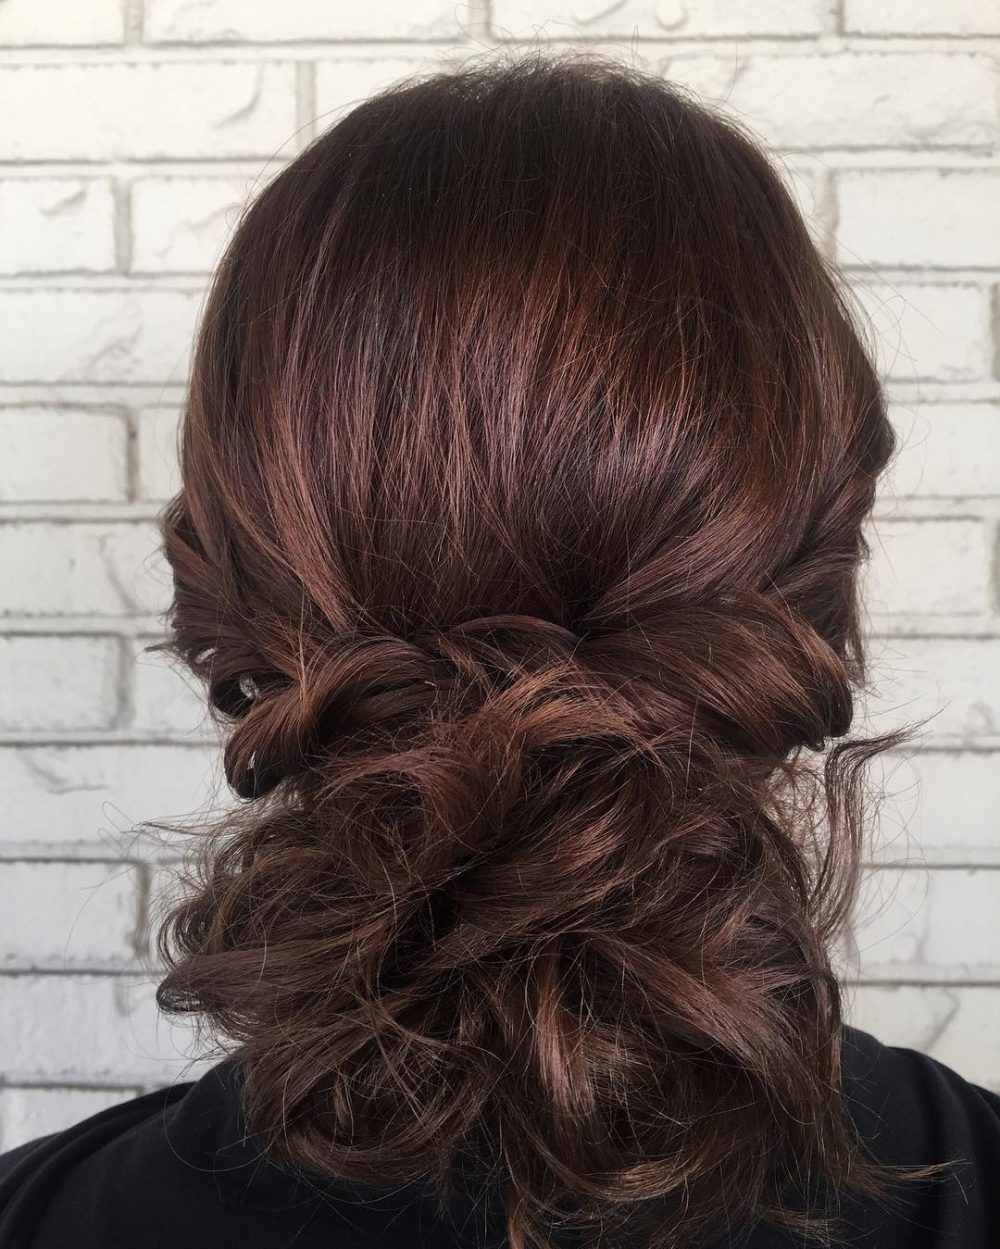 Messy Chic Updo hairstyle